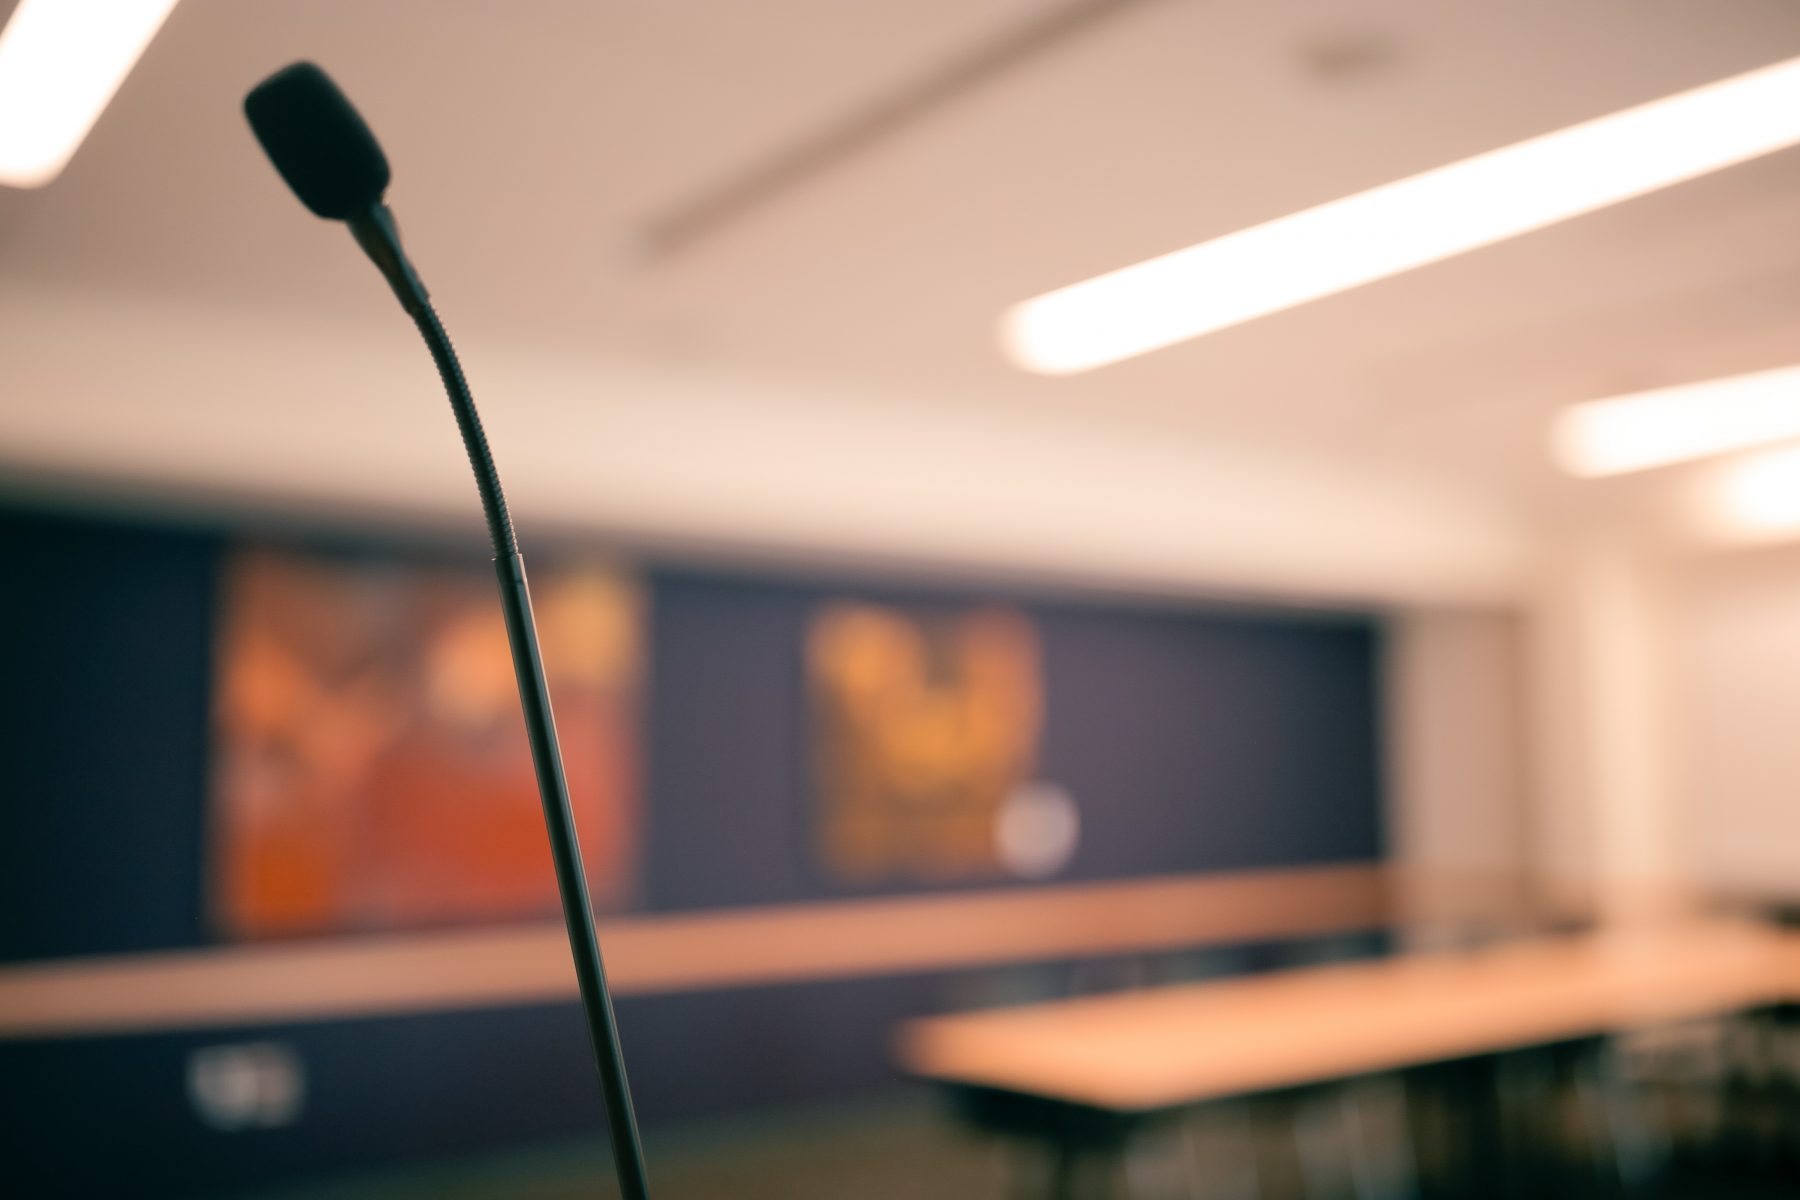 A microphone is installed on the lectern and is ready for use